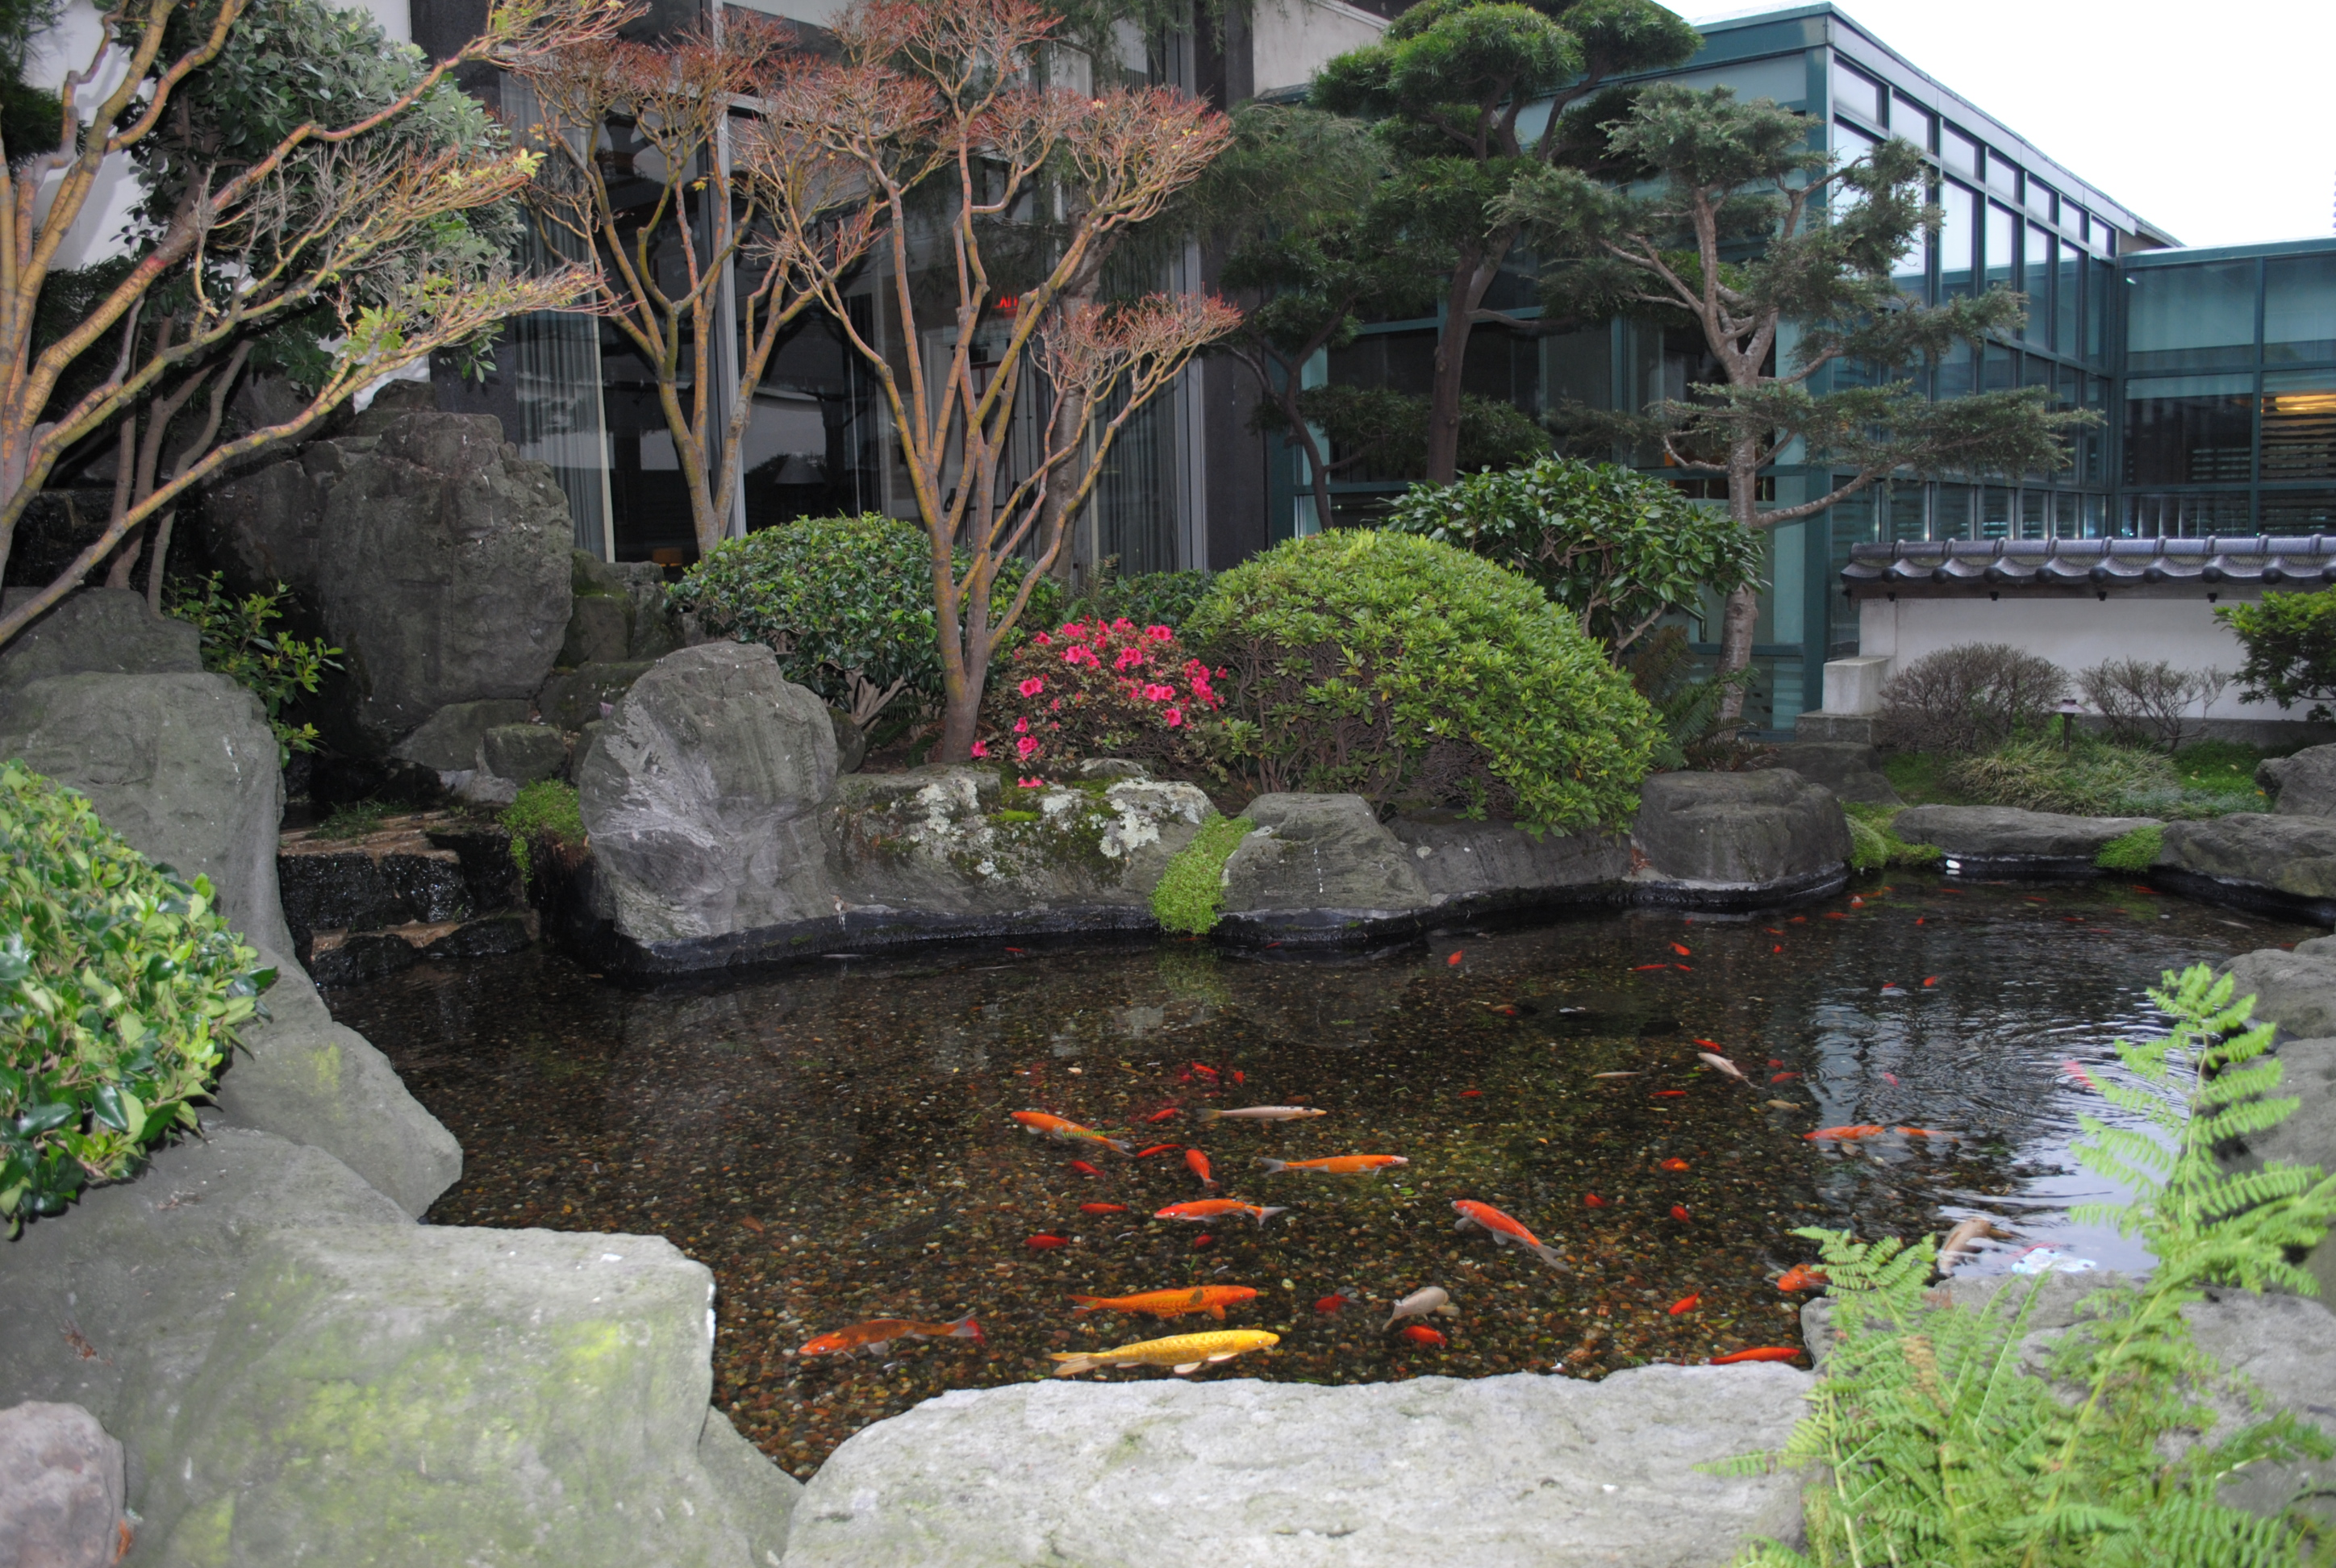 Japanese garden and pond by french bread on deviantart for Your pond japan